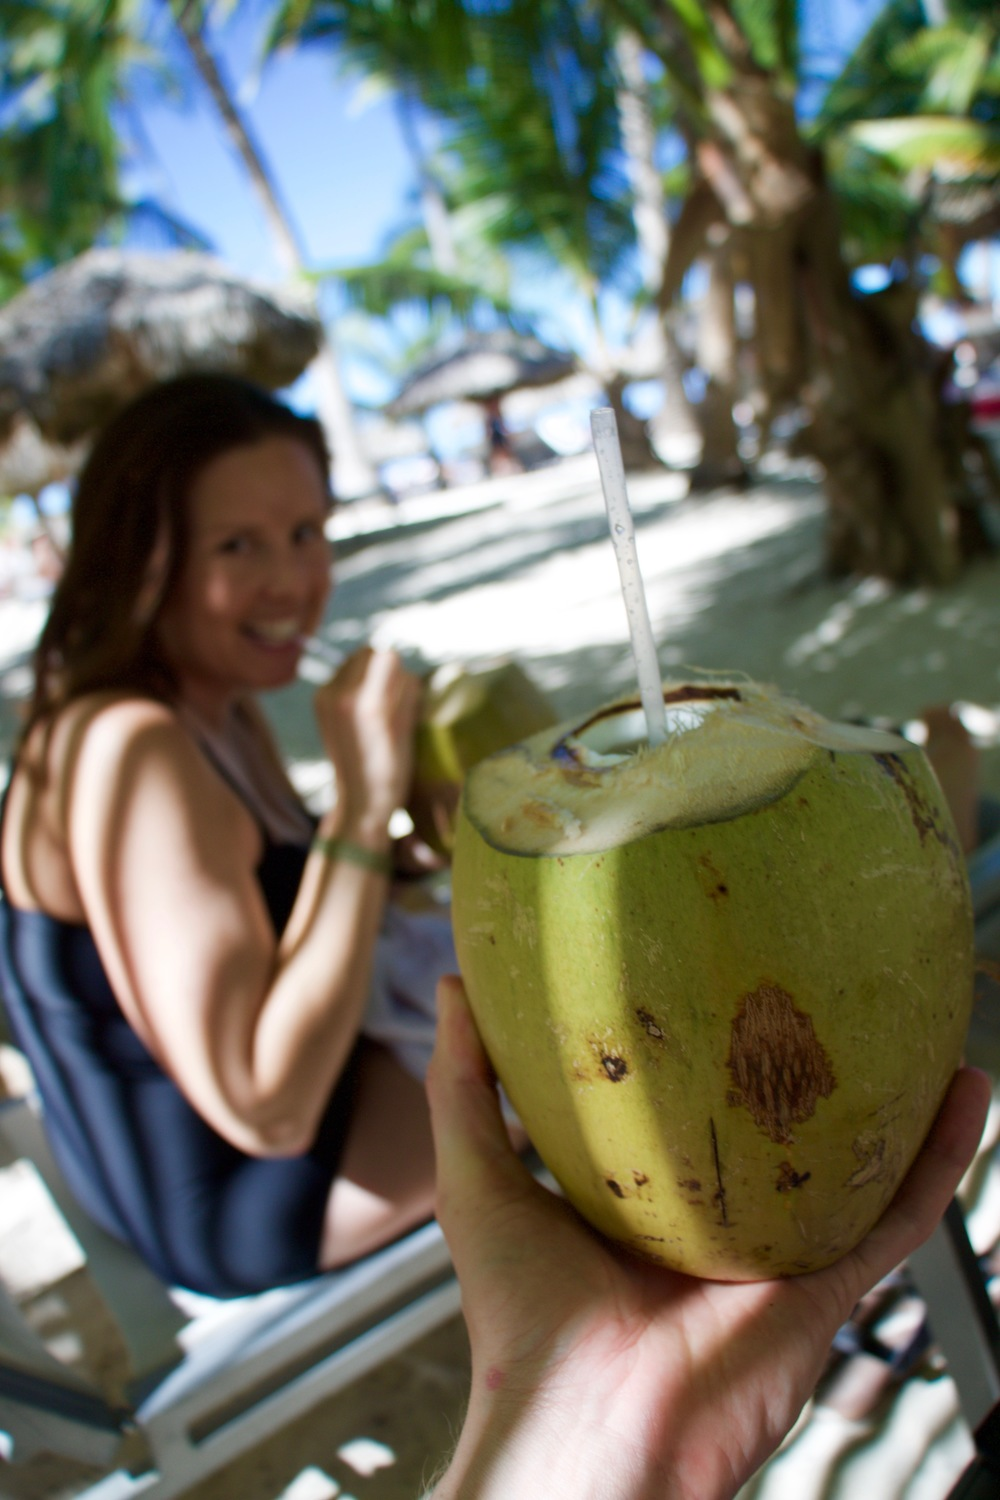 The Ma Loo Juice Bar had fresh coconuts that they would cut with a machete and serve to you straight with a straw.